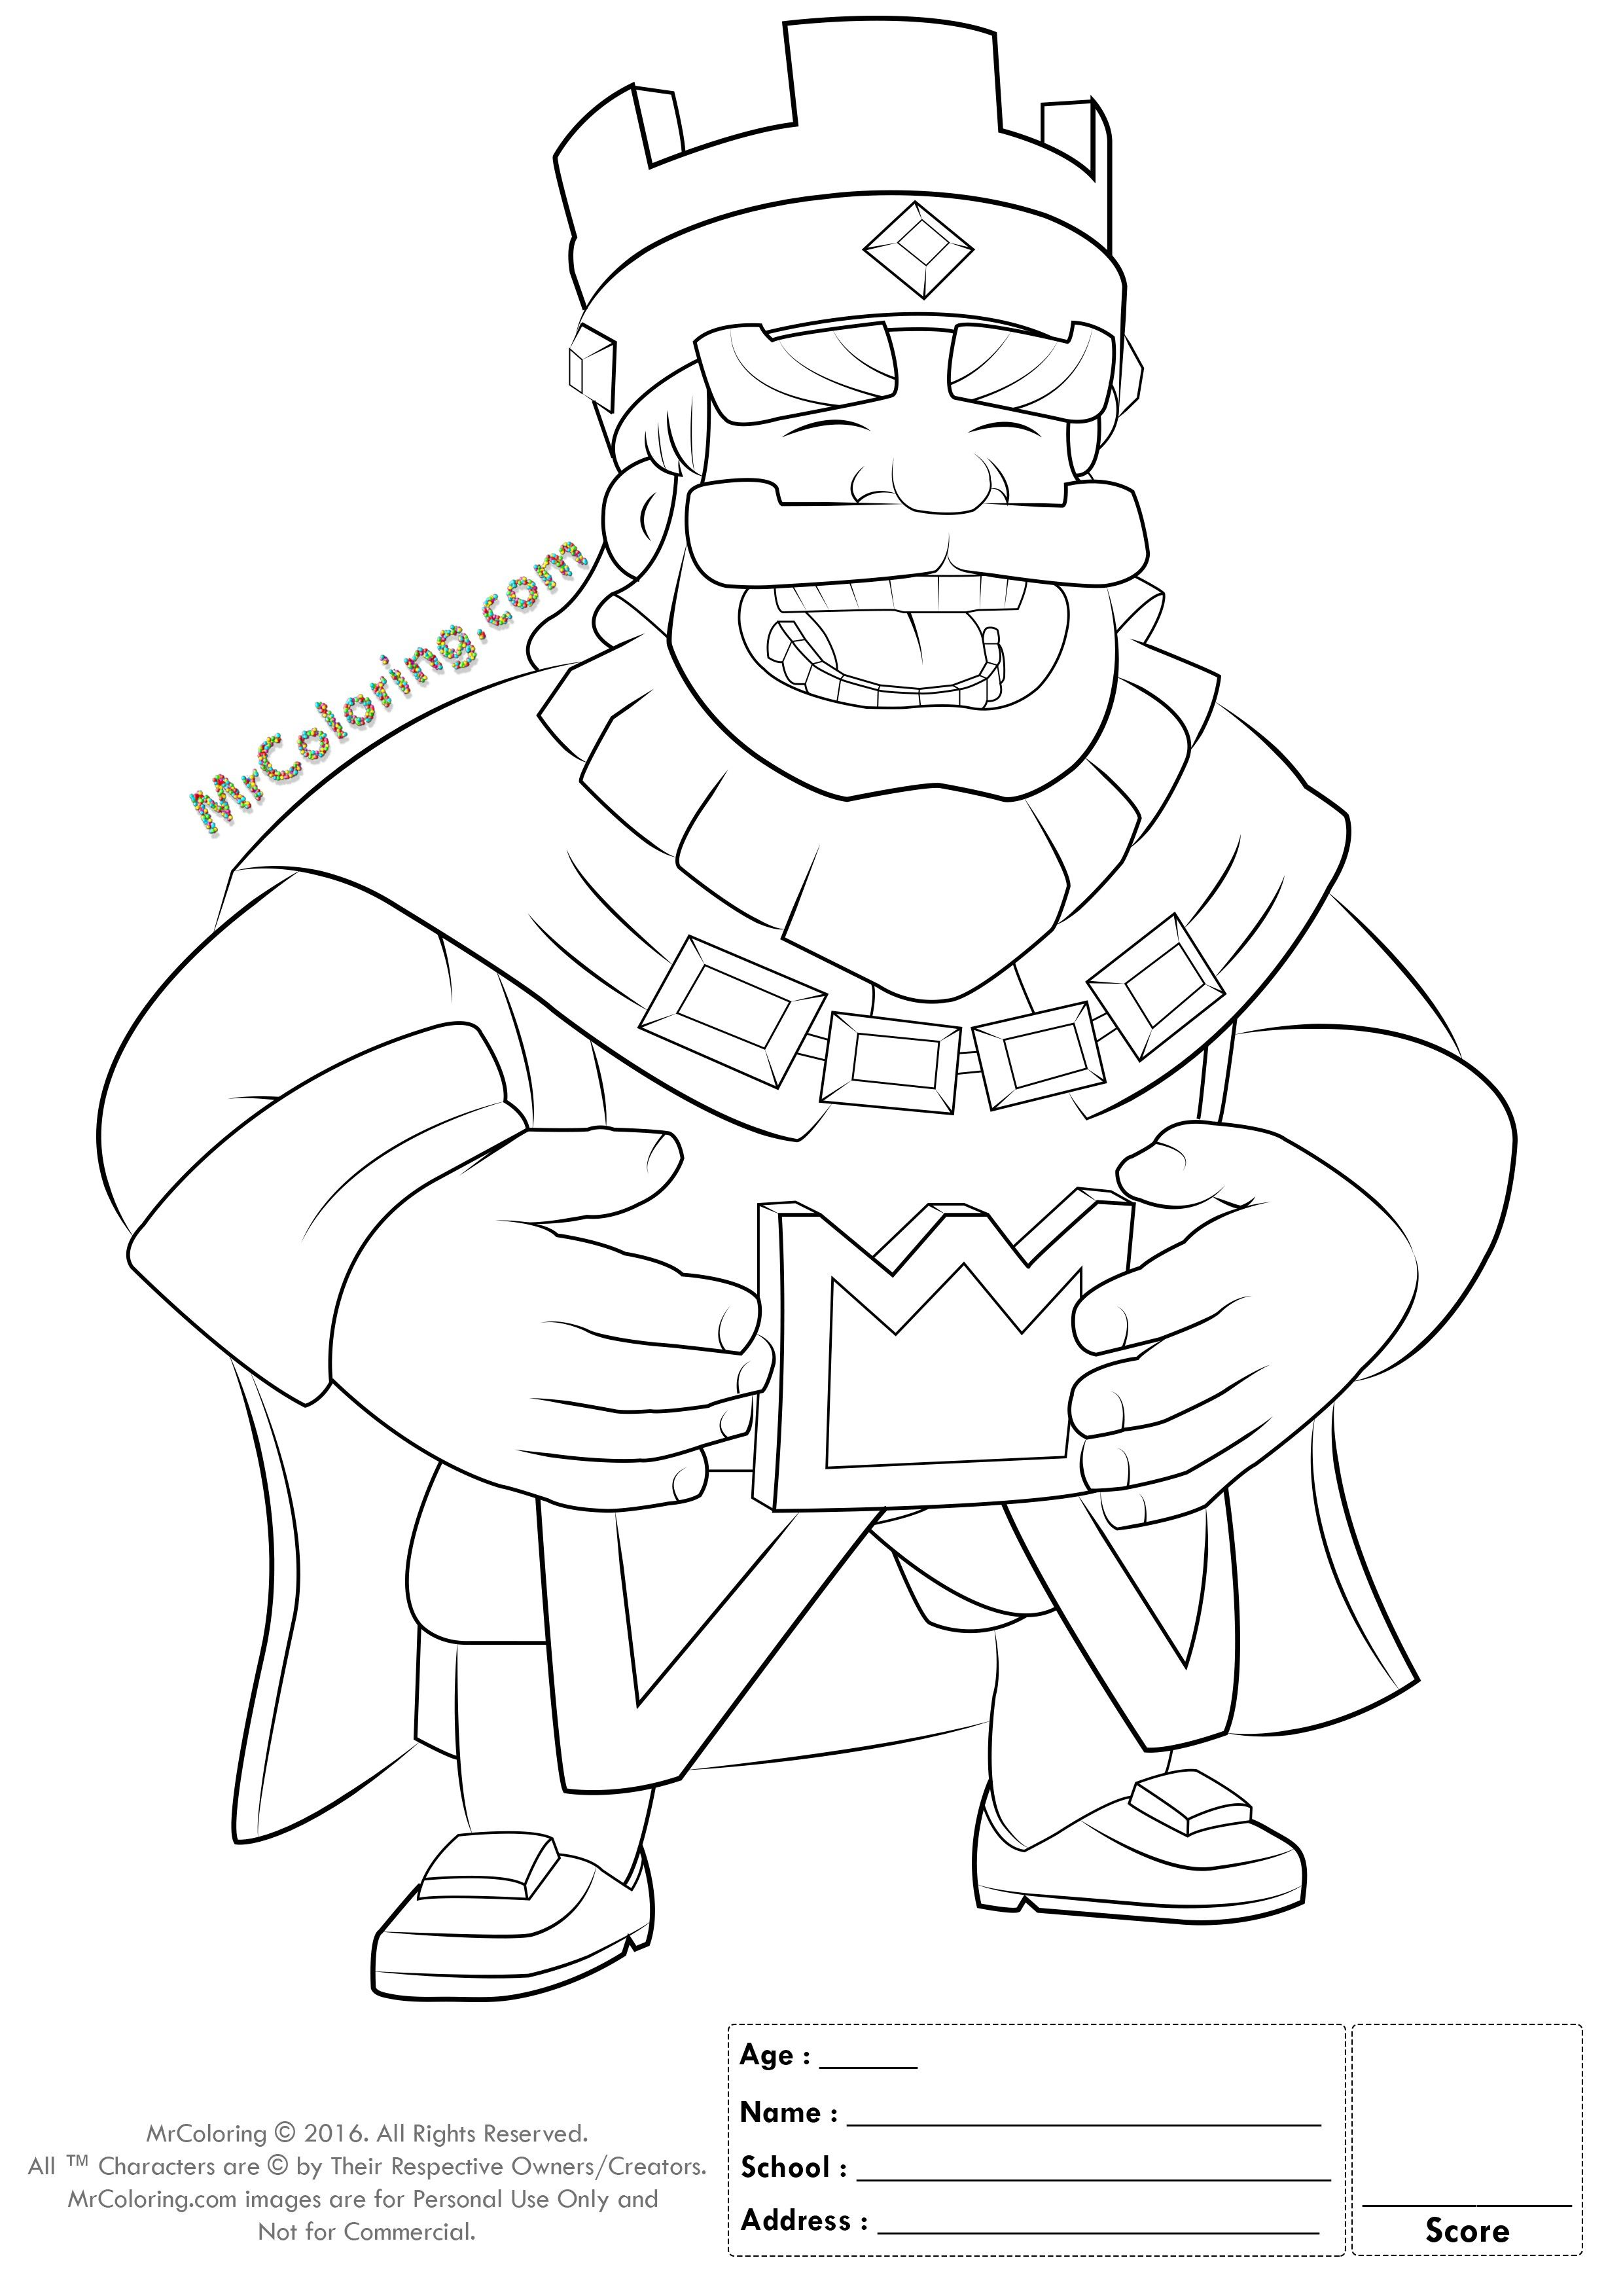 Clash Royale Princess Coloring Pages From The Thousand